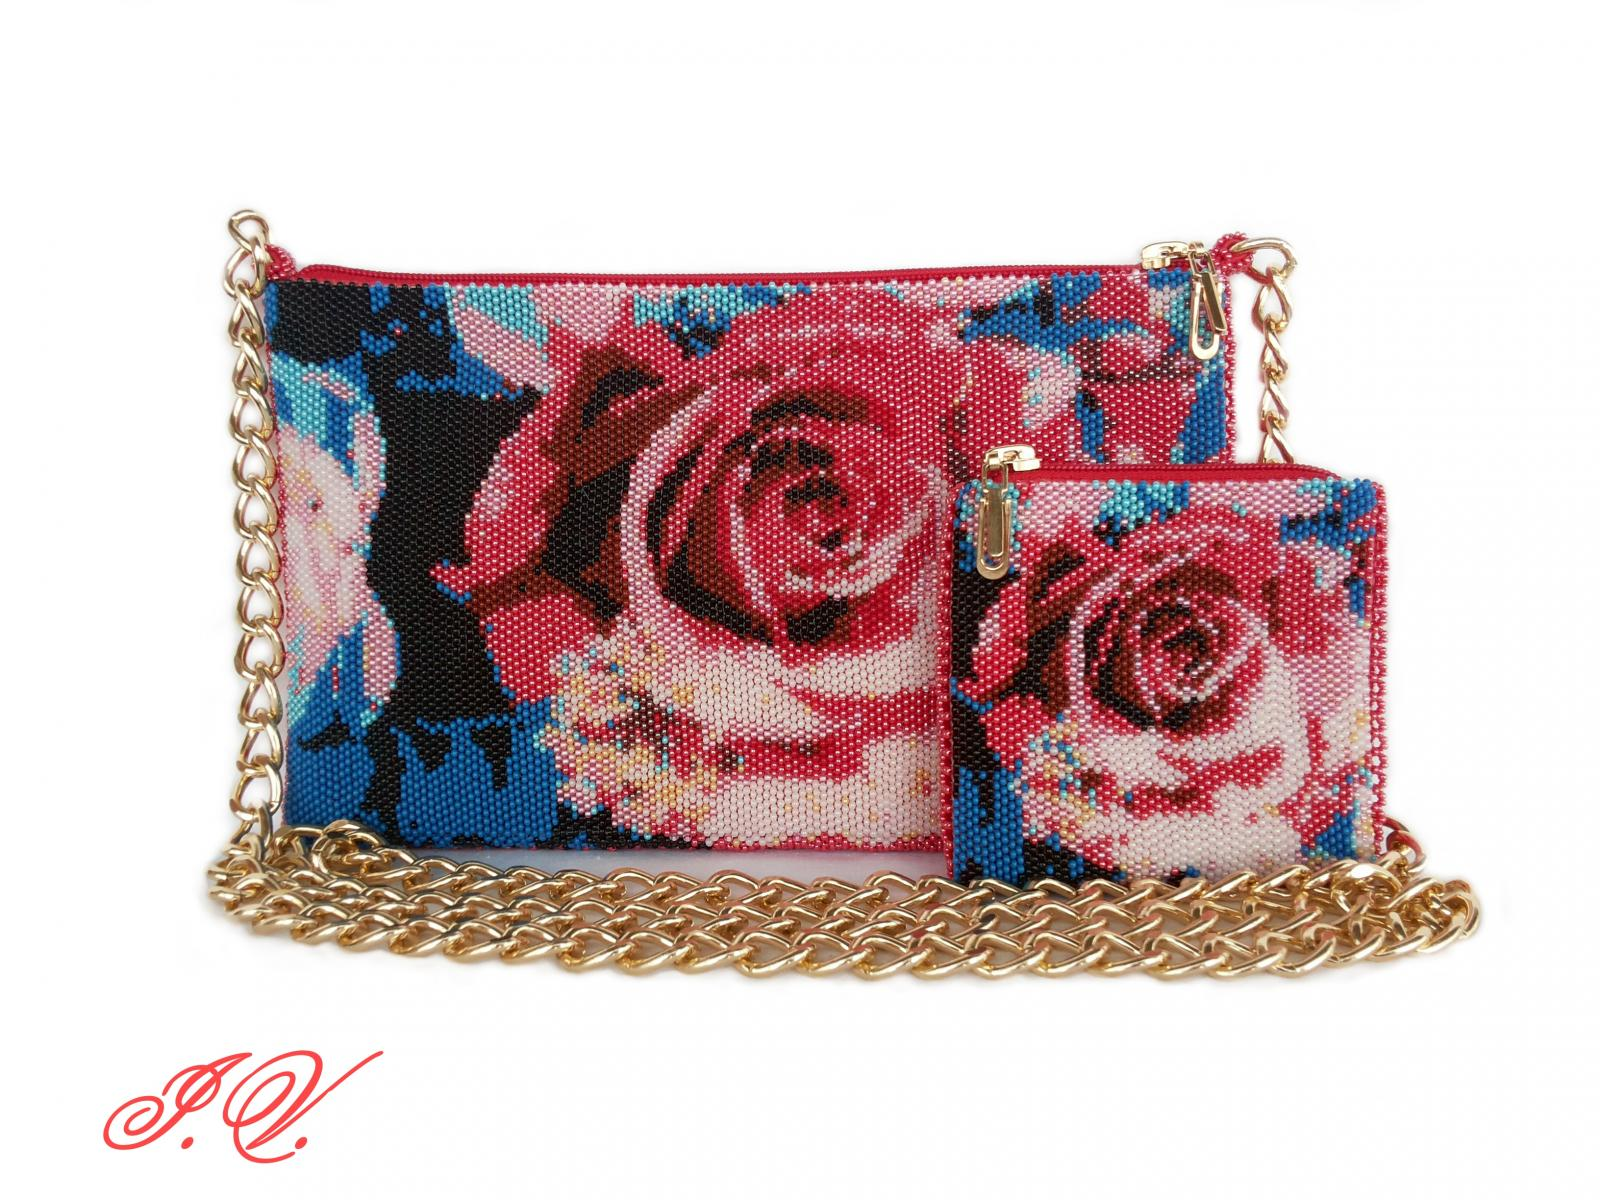 7-bag-beaded-clutch-bedsmagic